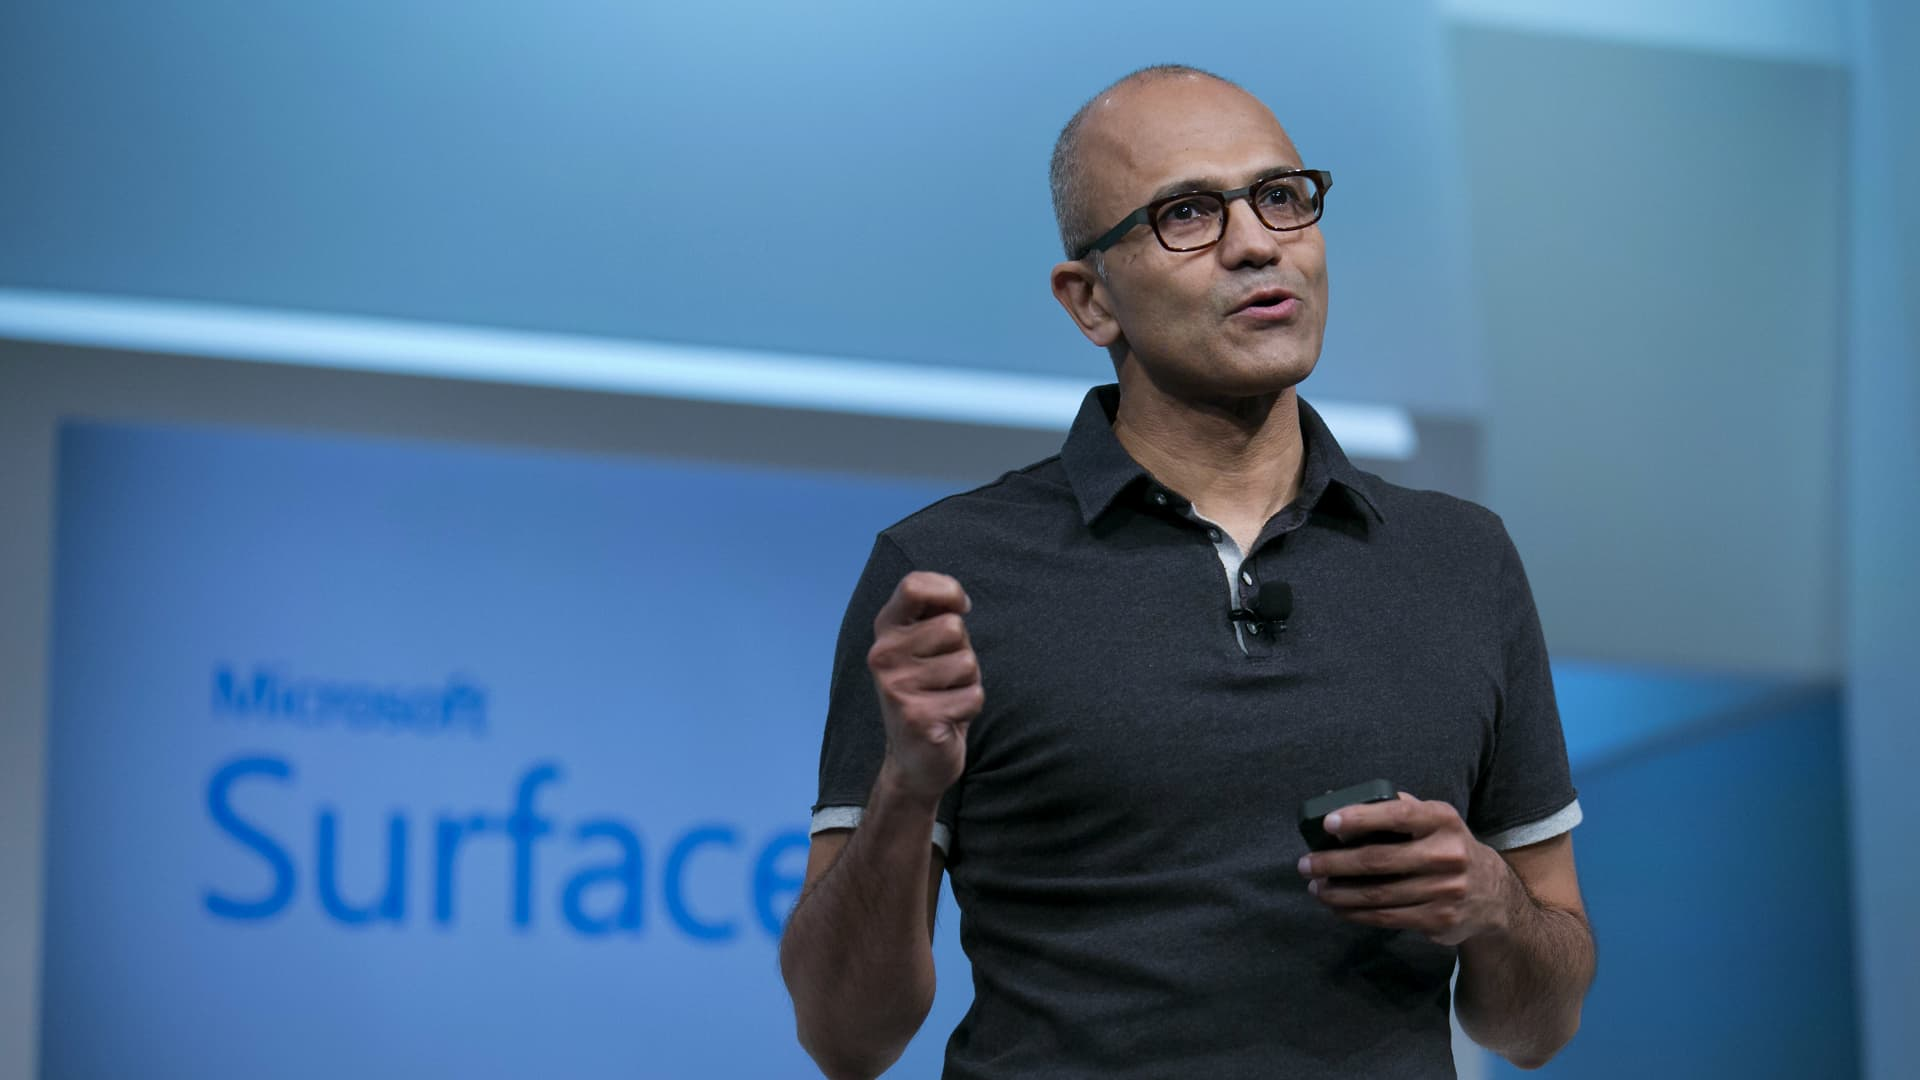 Satya Nadella, chief executive officer of Microsoft Corp., speaks during the unveiling of the Surface Pro 3 at an event in New York on May 20, 2014.